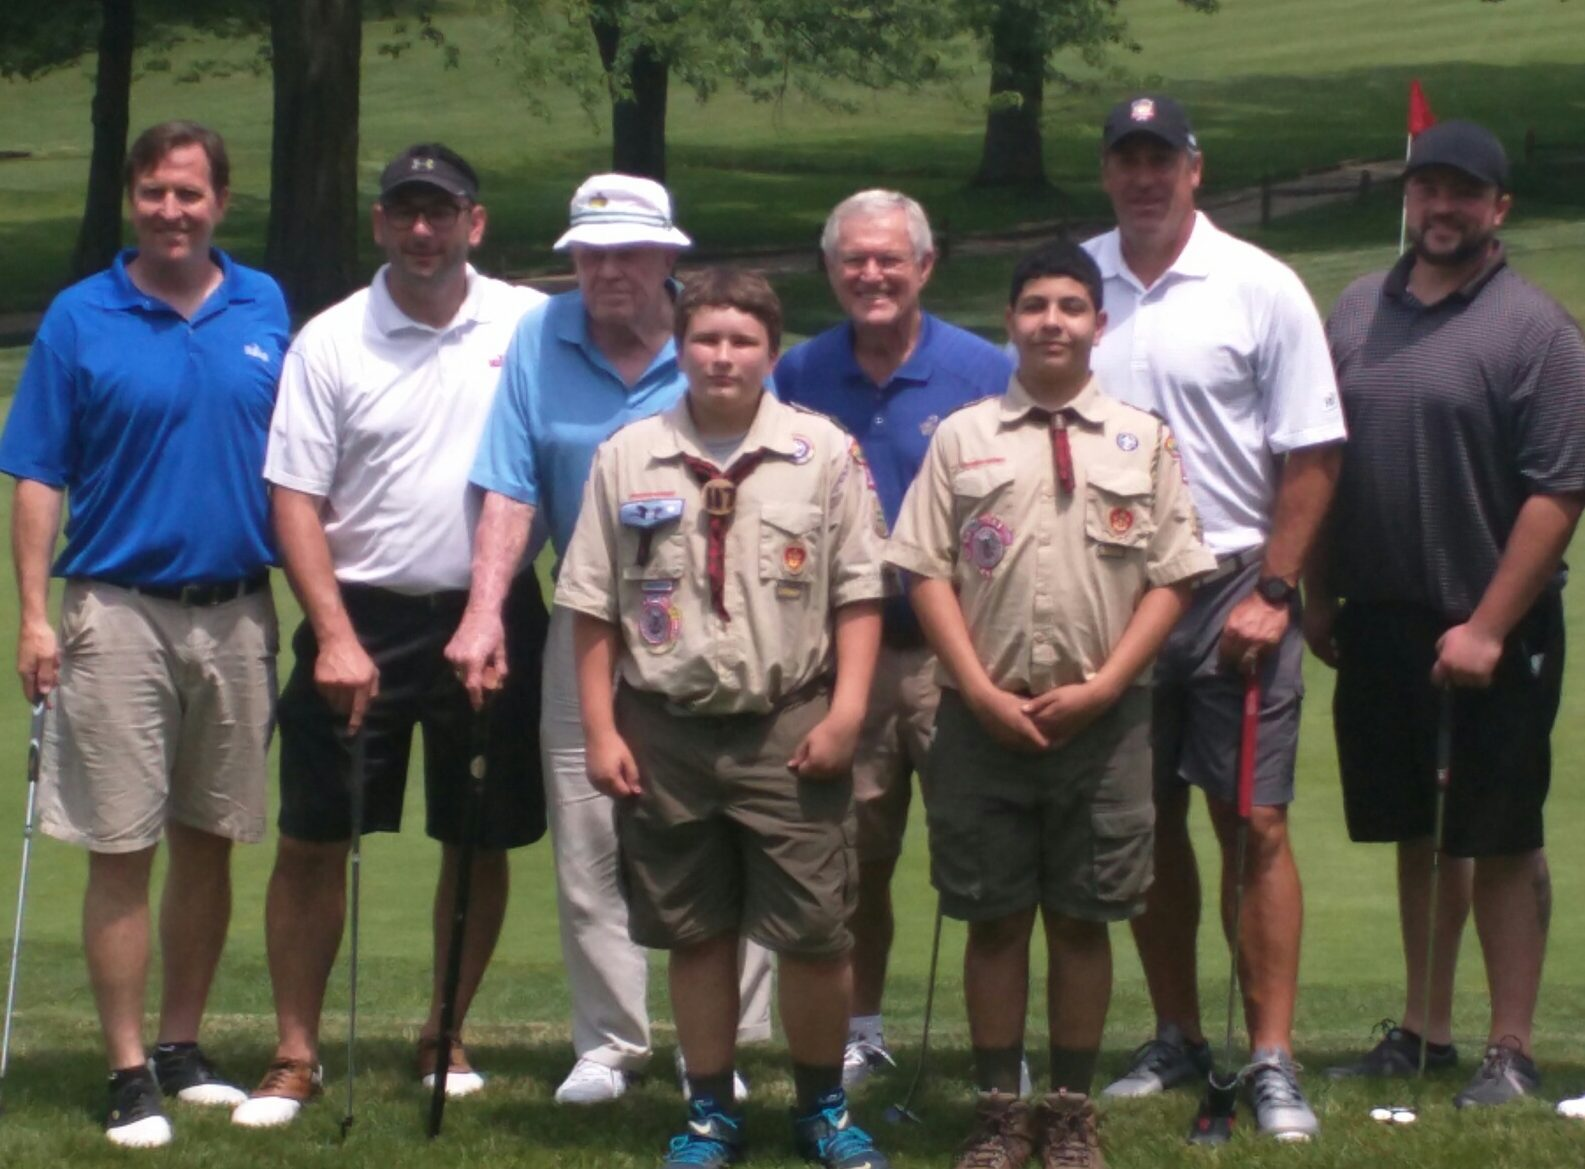 Football Royalty Descends Upon Downingtown Country Club to Support Dick Vermeil, Boy Scouts